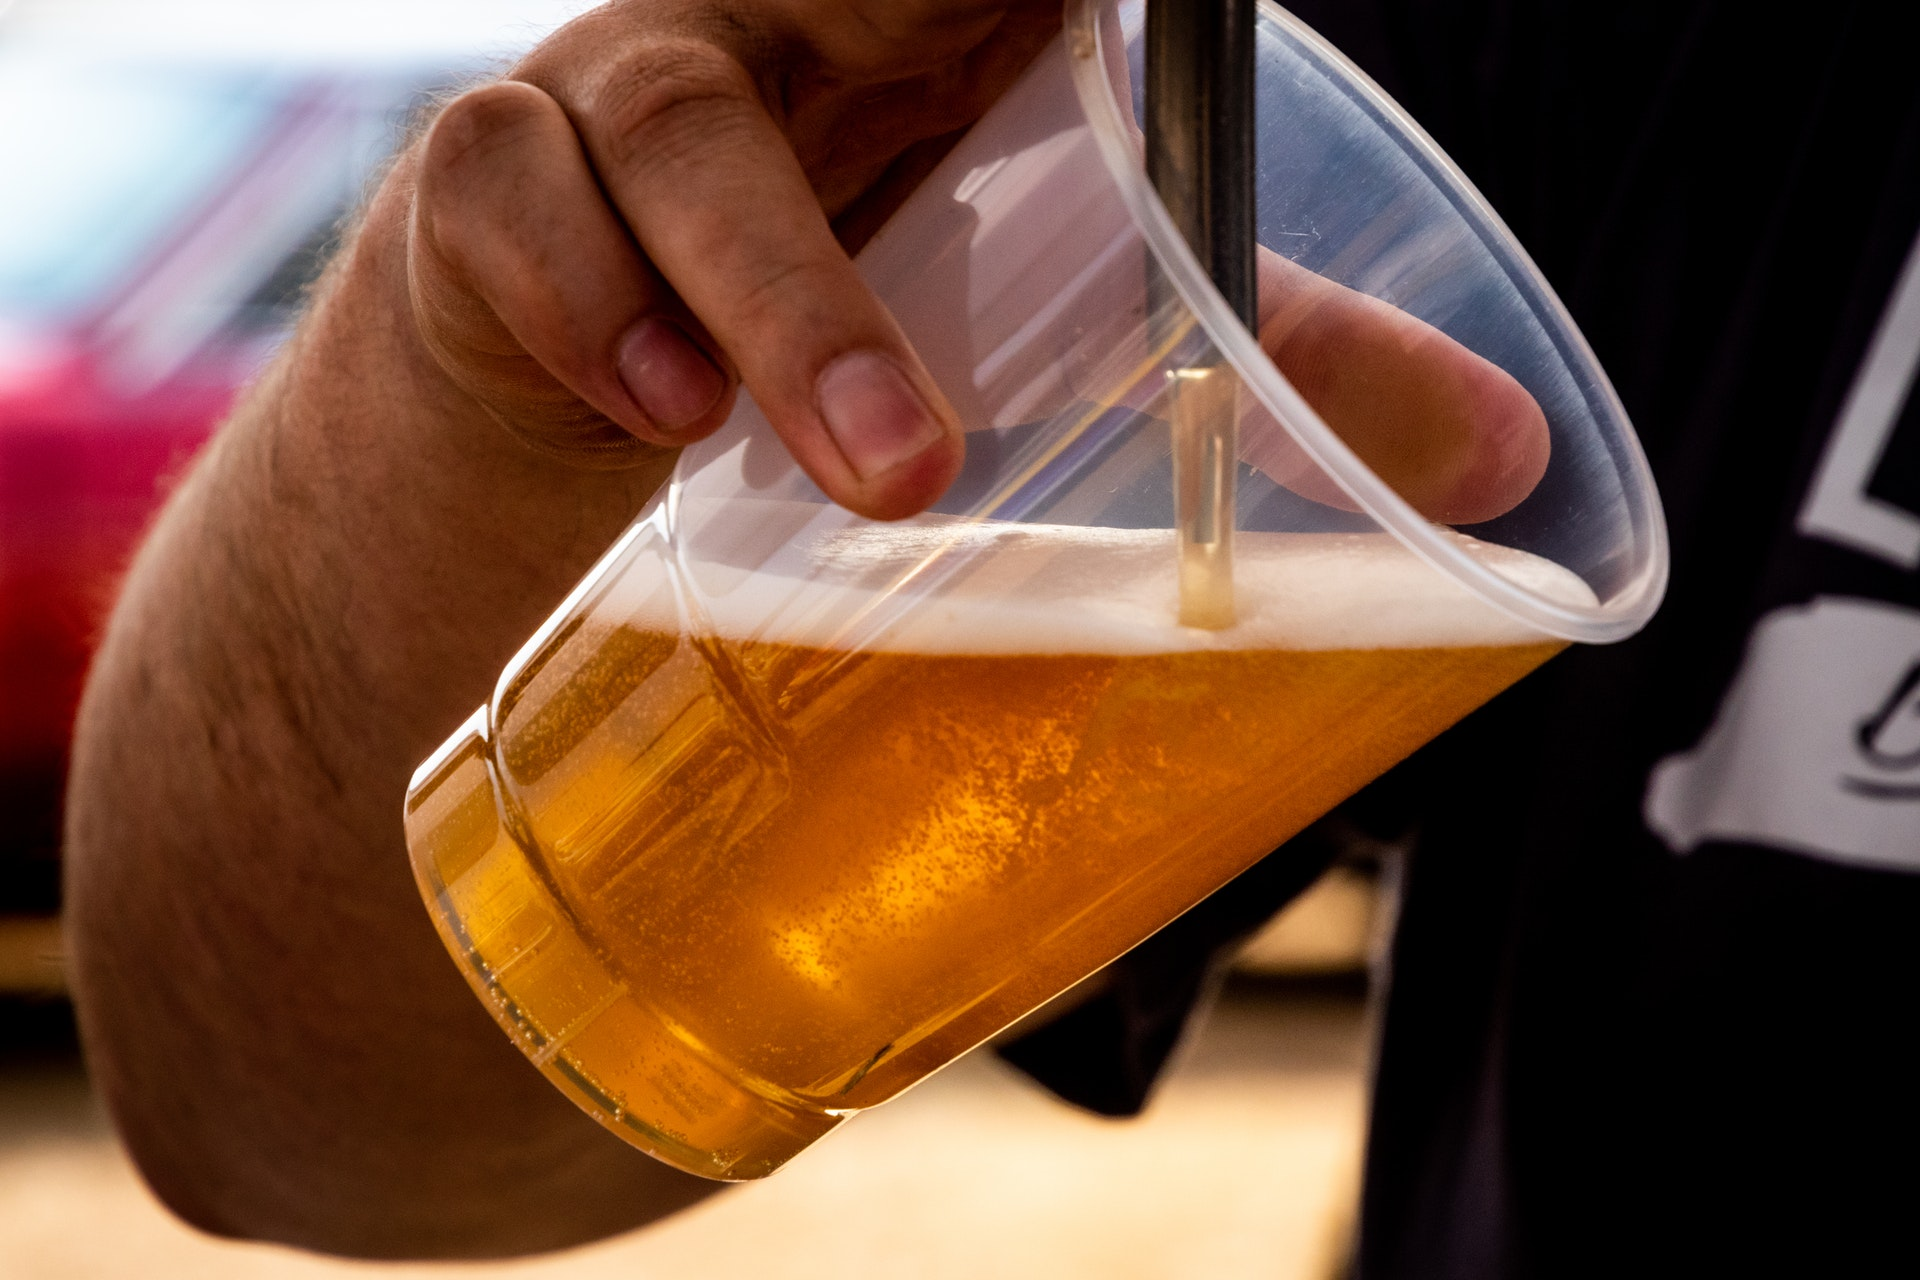 Pint-sized win for brewers, now allowed to sell beer at farmers' markets